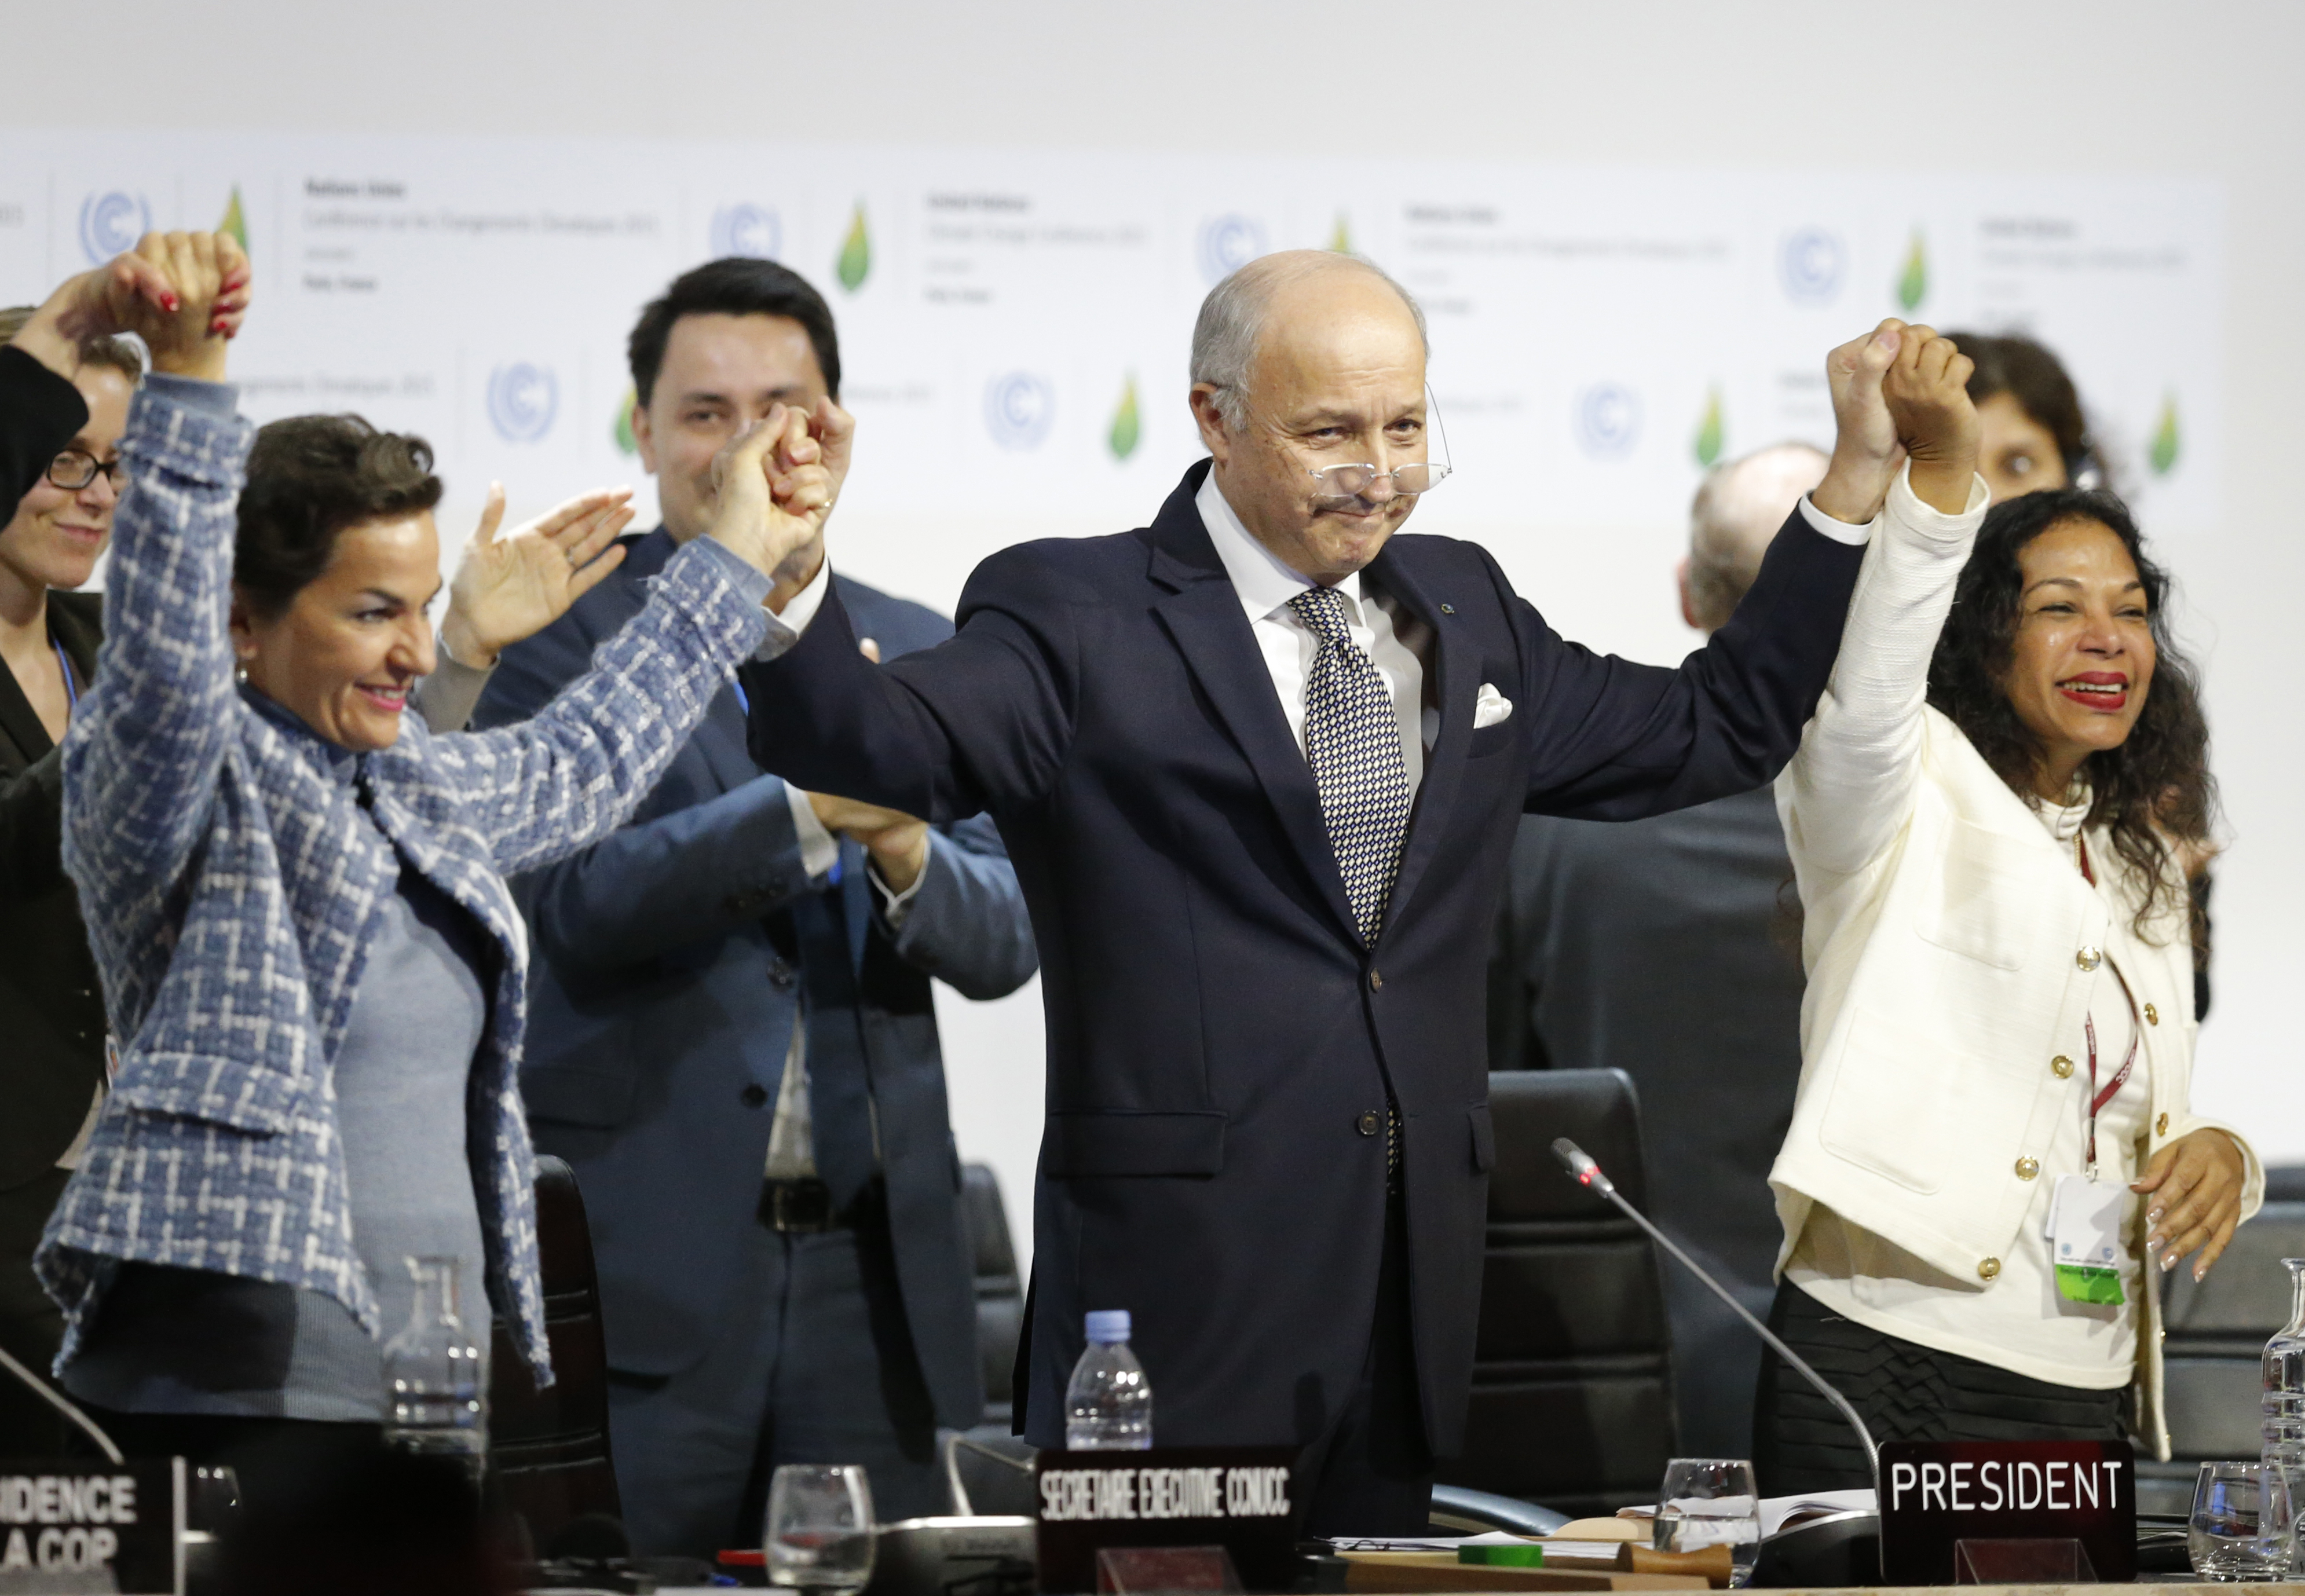 French Foreign Affairs Minister Laurent Fabius (C), President-designate of COP21, and Christiana Figueres (L), Executive Secretary of the UN Framework Convention on Climate Change, react during the final plenary session at the World Climate Change Conference 2015 (COP21) at Le Bourget, near Paris, France, December 12, 2015.     REUTERS/Stephane Mahe   - LR1EBCC1MTTOP